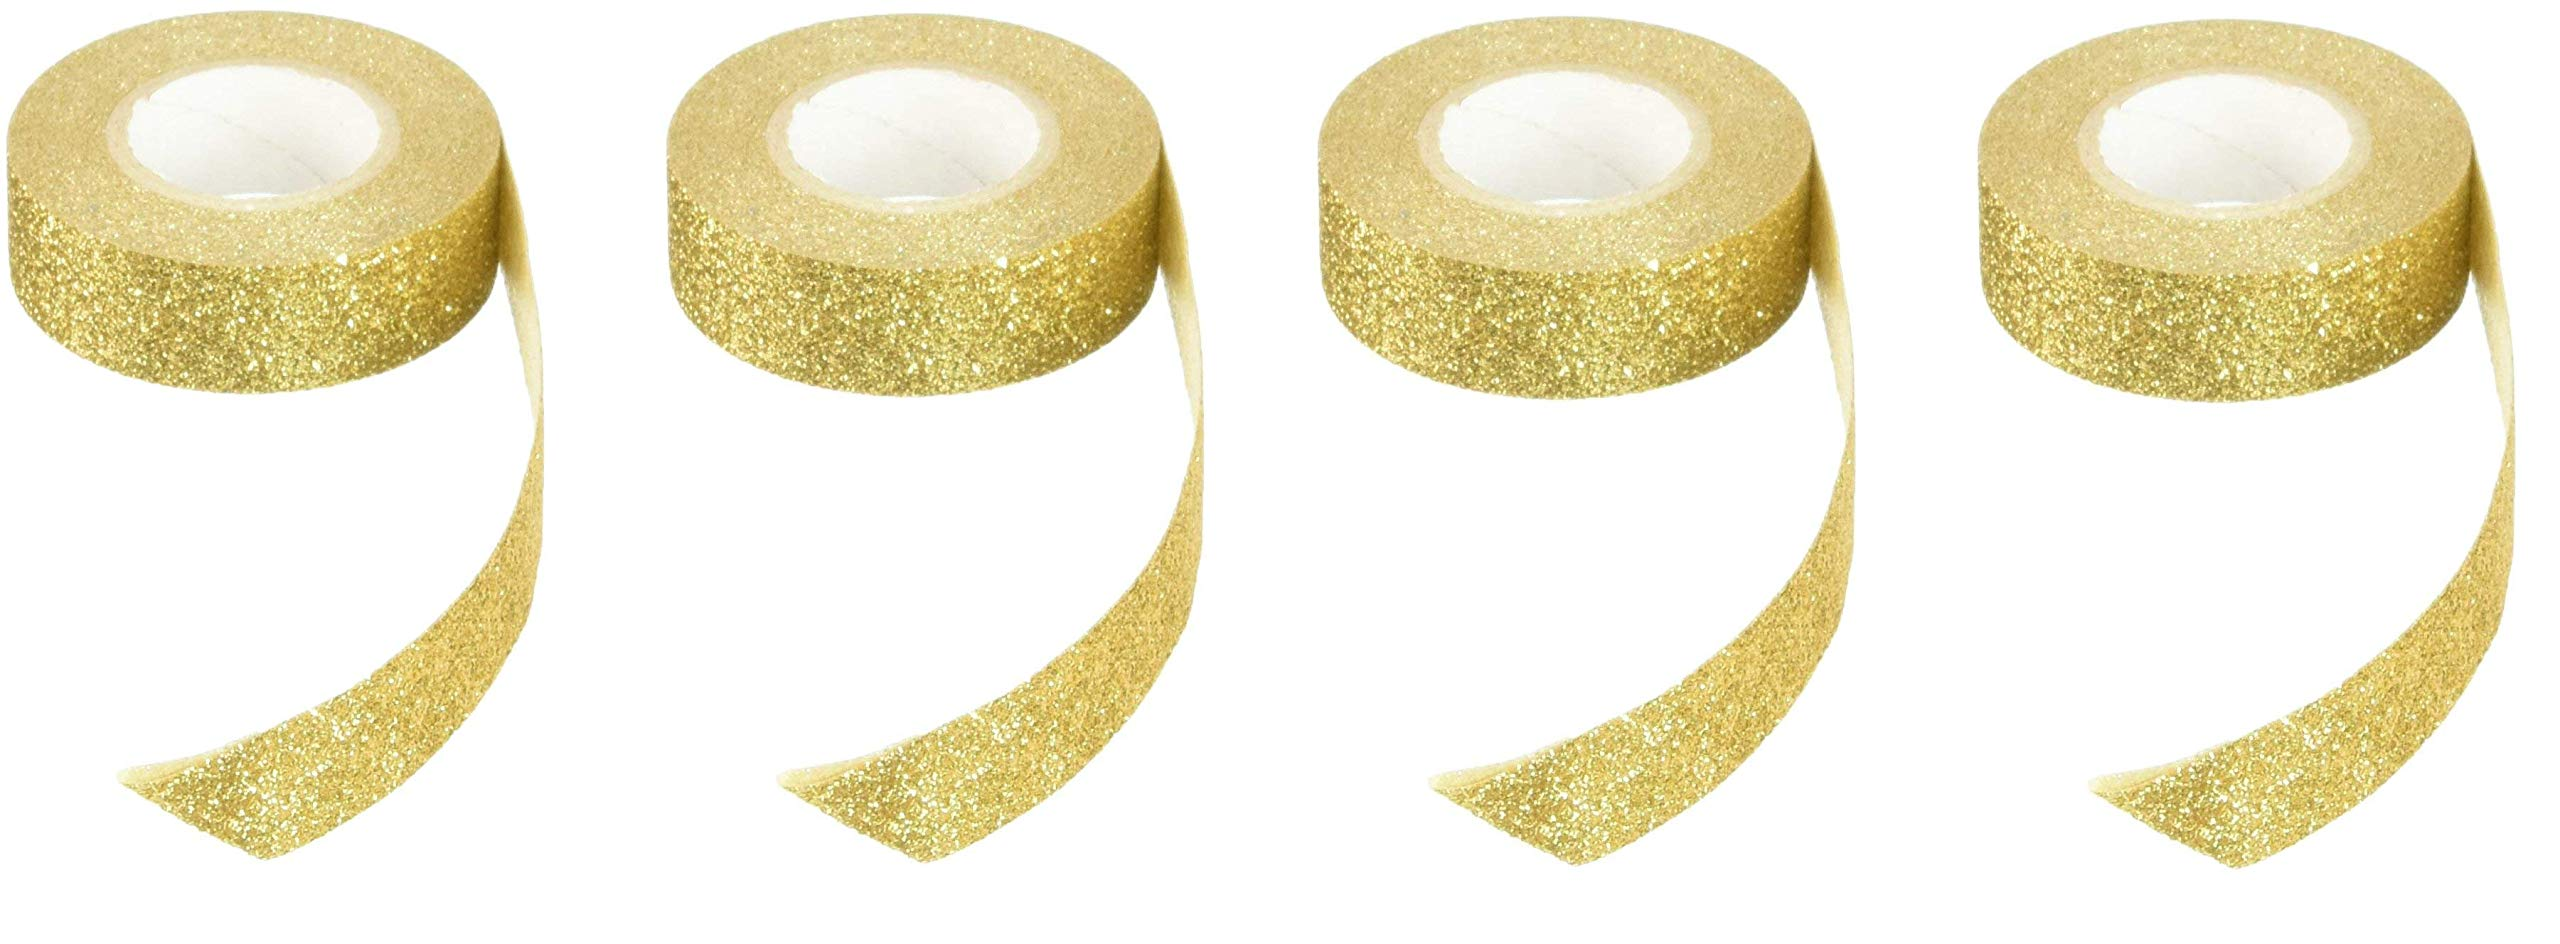 Best Creation Glitter Tape, 15mm by 5m, Gold - GTS002 (4-Pack)